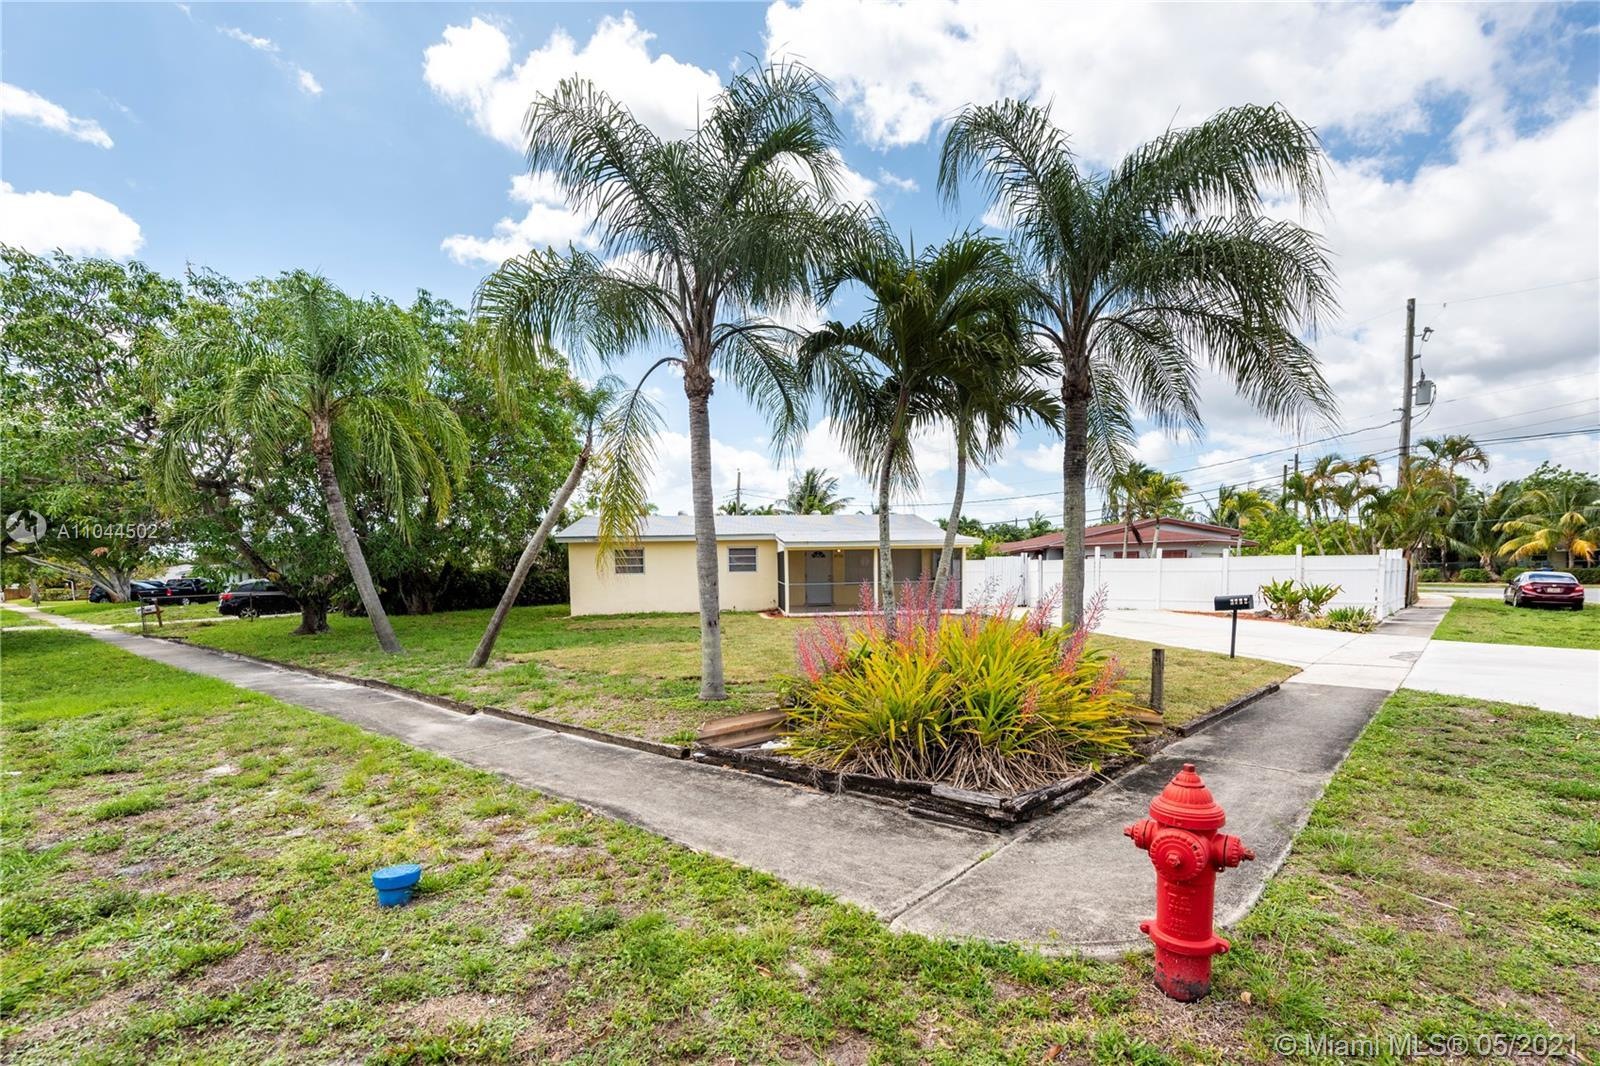 Largest Corner Fenced Lot Pool (heated) House In Area! Over 10,393 SQ FT Lot! 3bed -2 Bath-+ Family